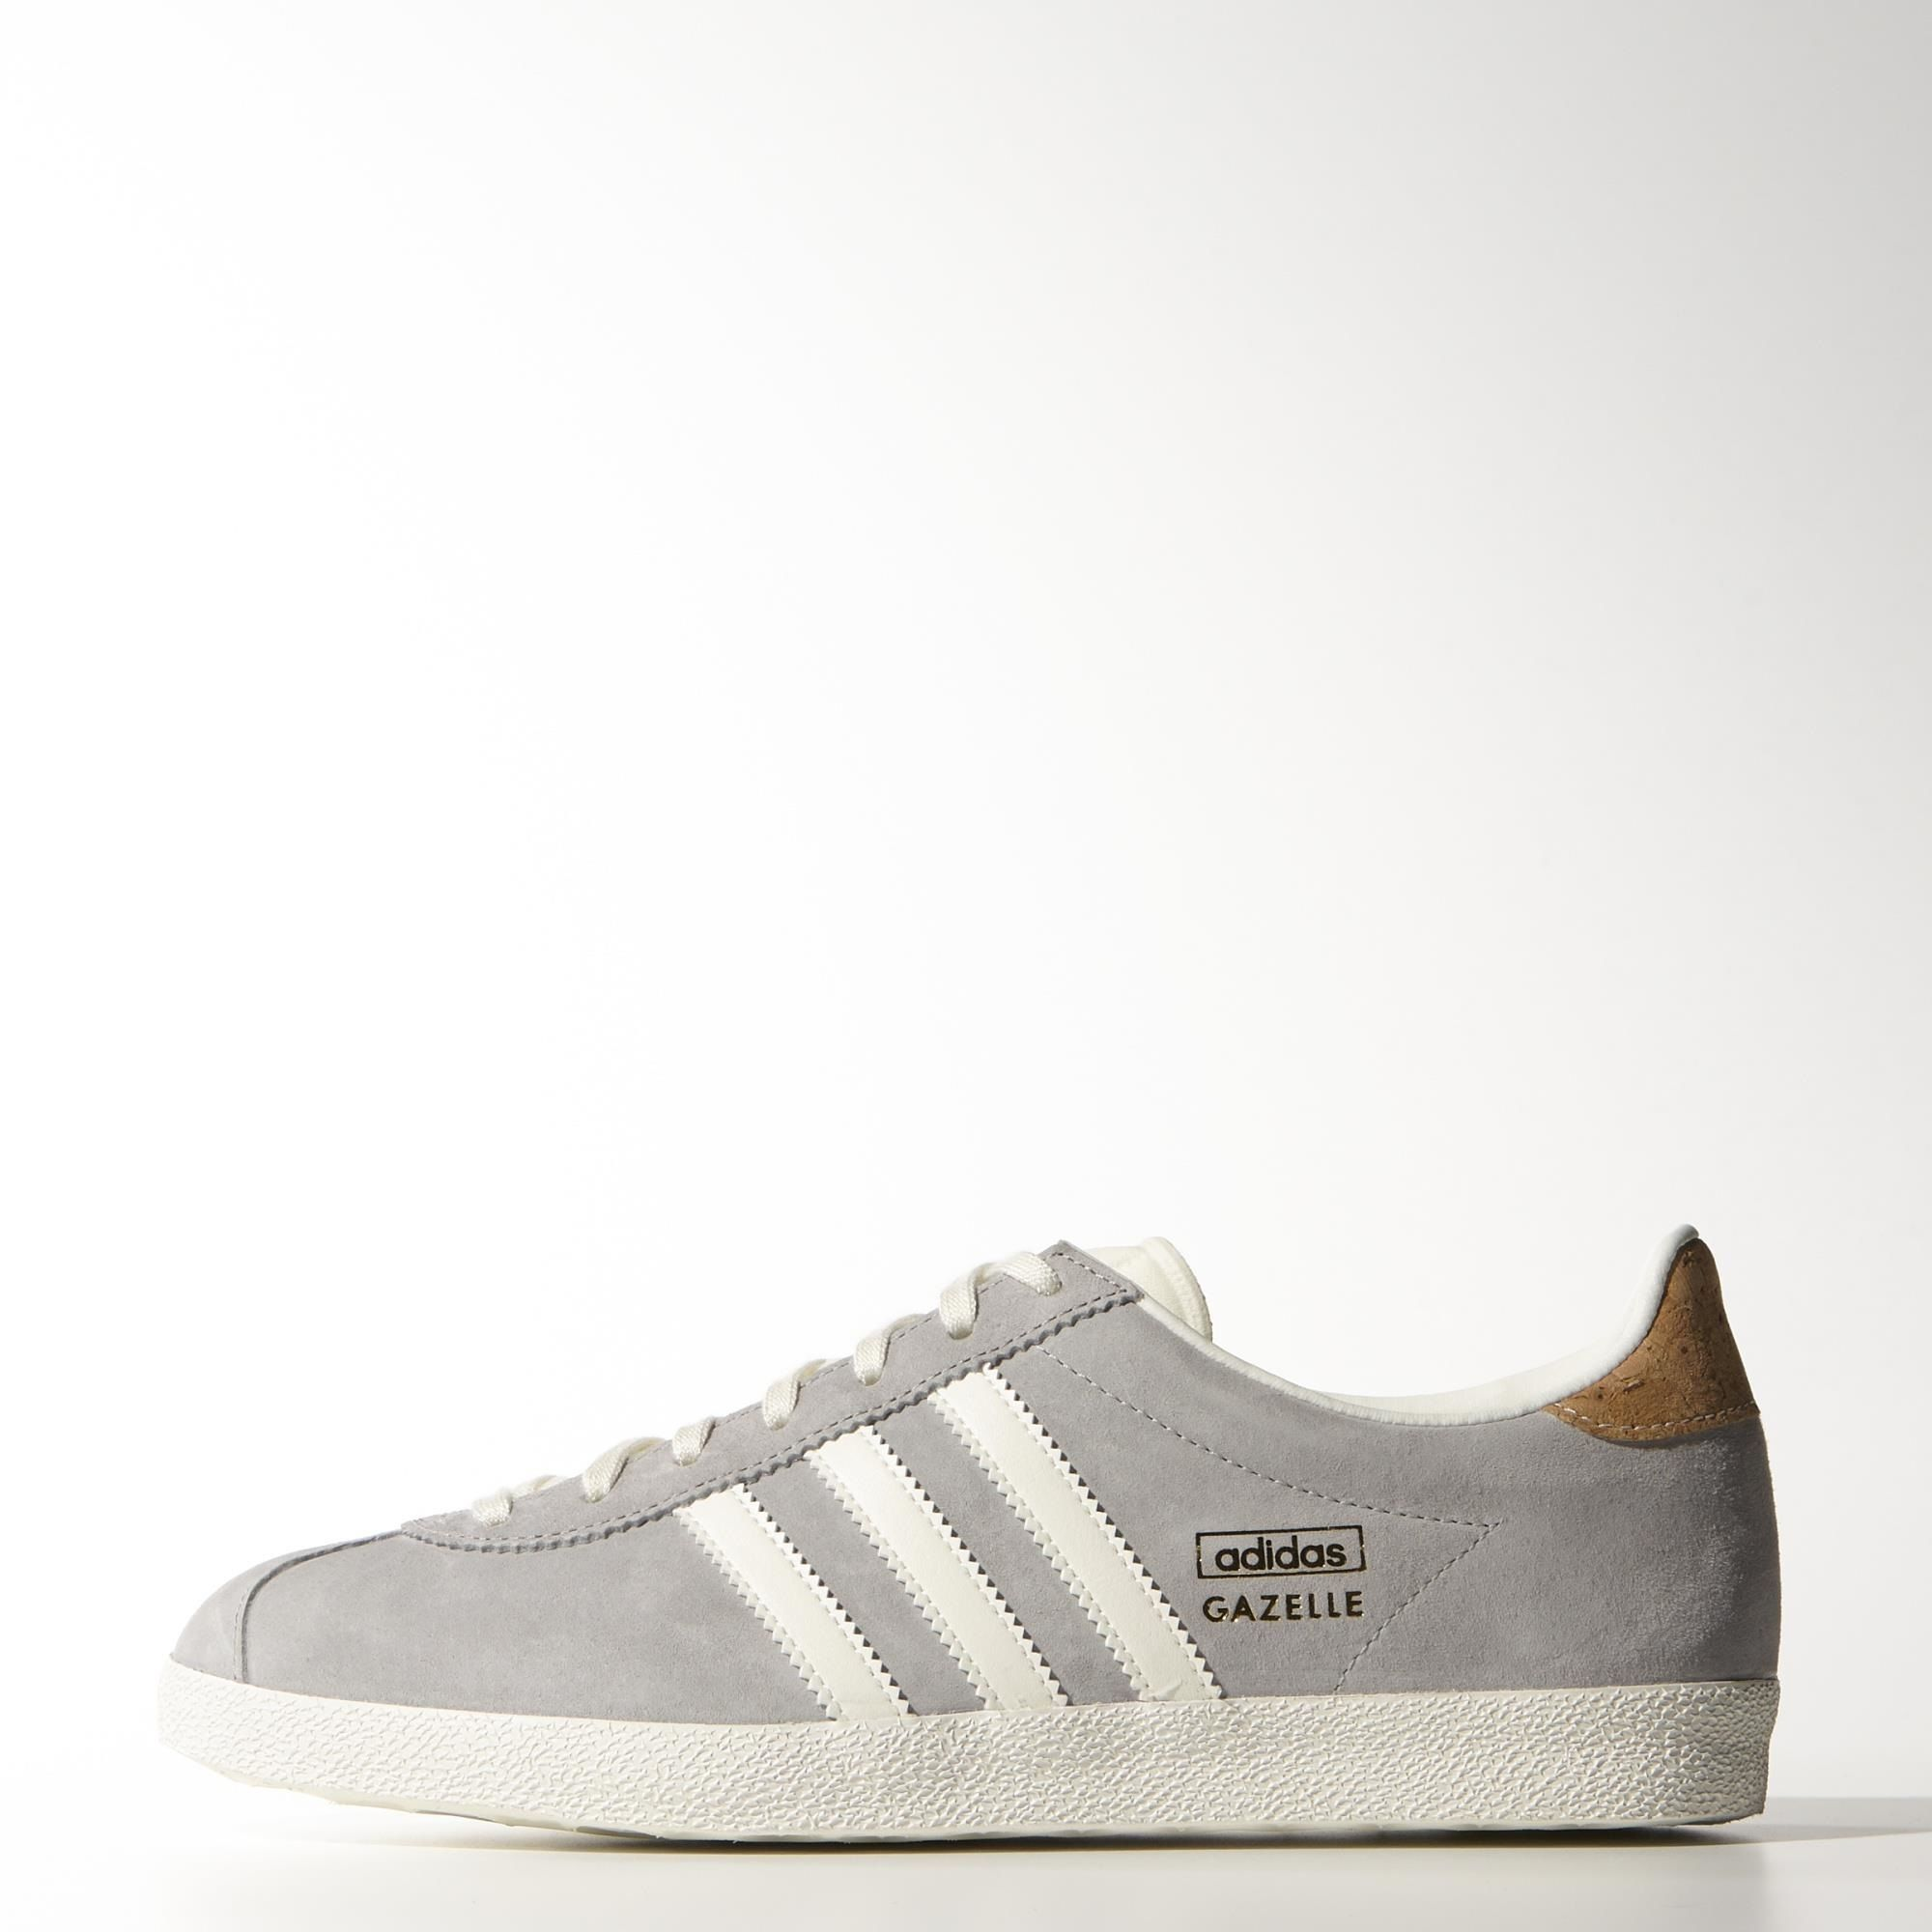 Adidas Originals Mens Gazelle II Retro Trainers Mustard Yellow